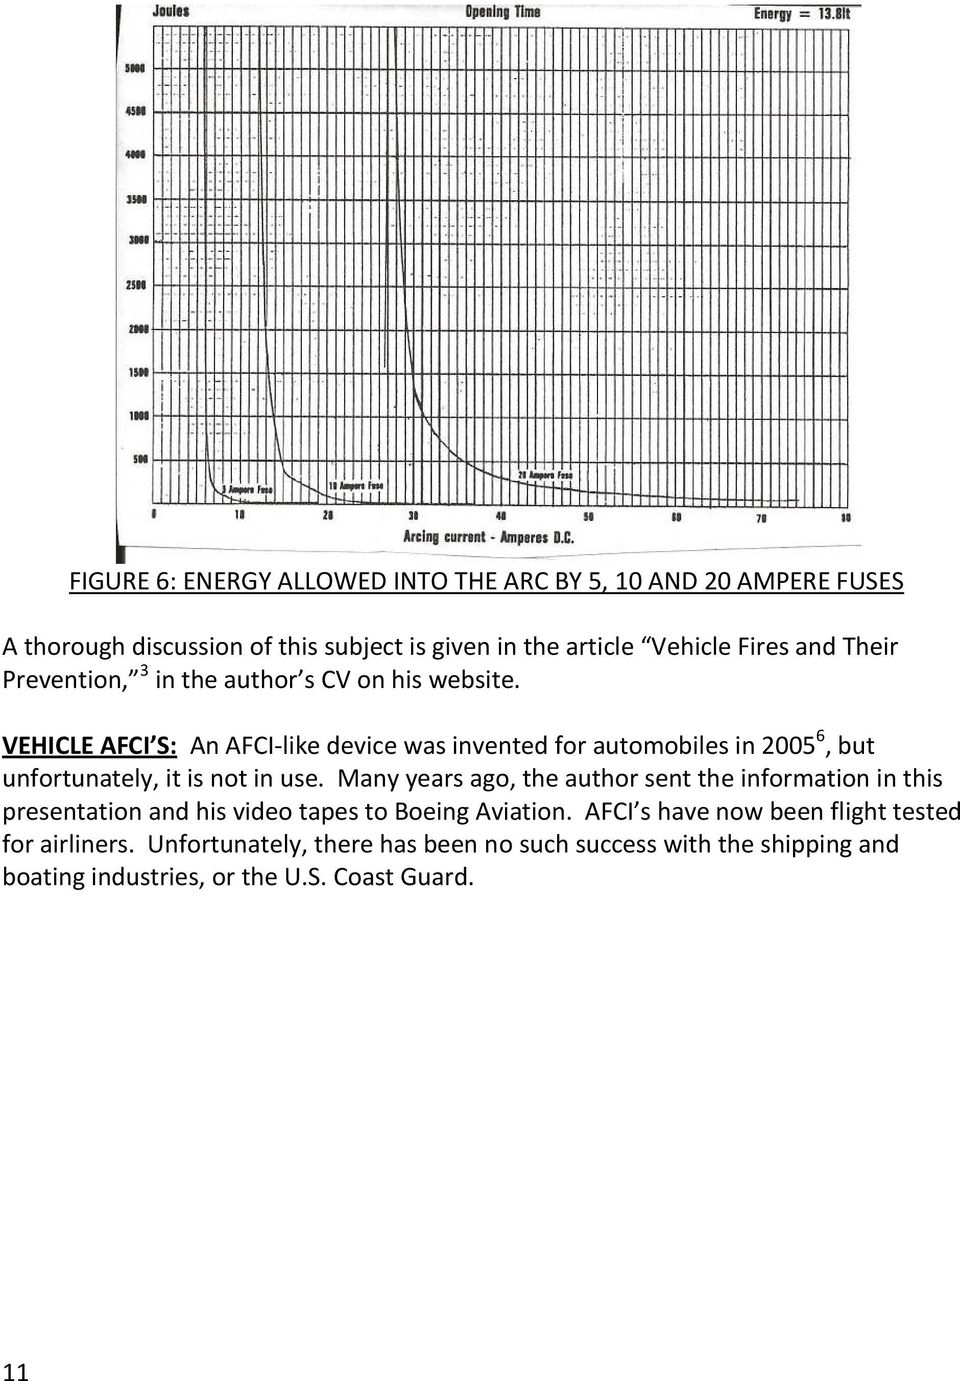 Forensic Engineering Analysis Of Electrical Fires Due To Arcing Pdf Afci Fundamentals Arc Fault Circuit Interrupter Vehicle S An Like Device Was Invented For Automobiles In 20056